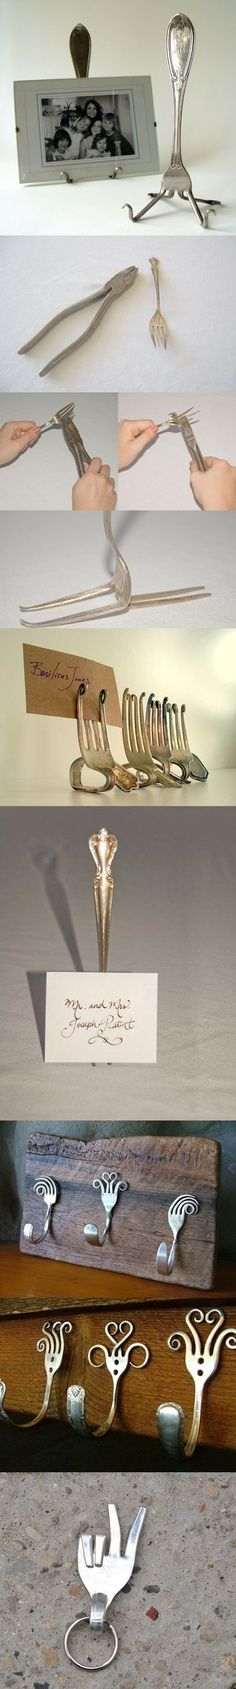 Love fork art